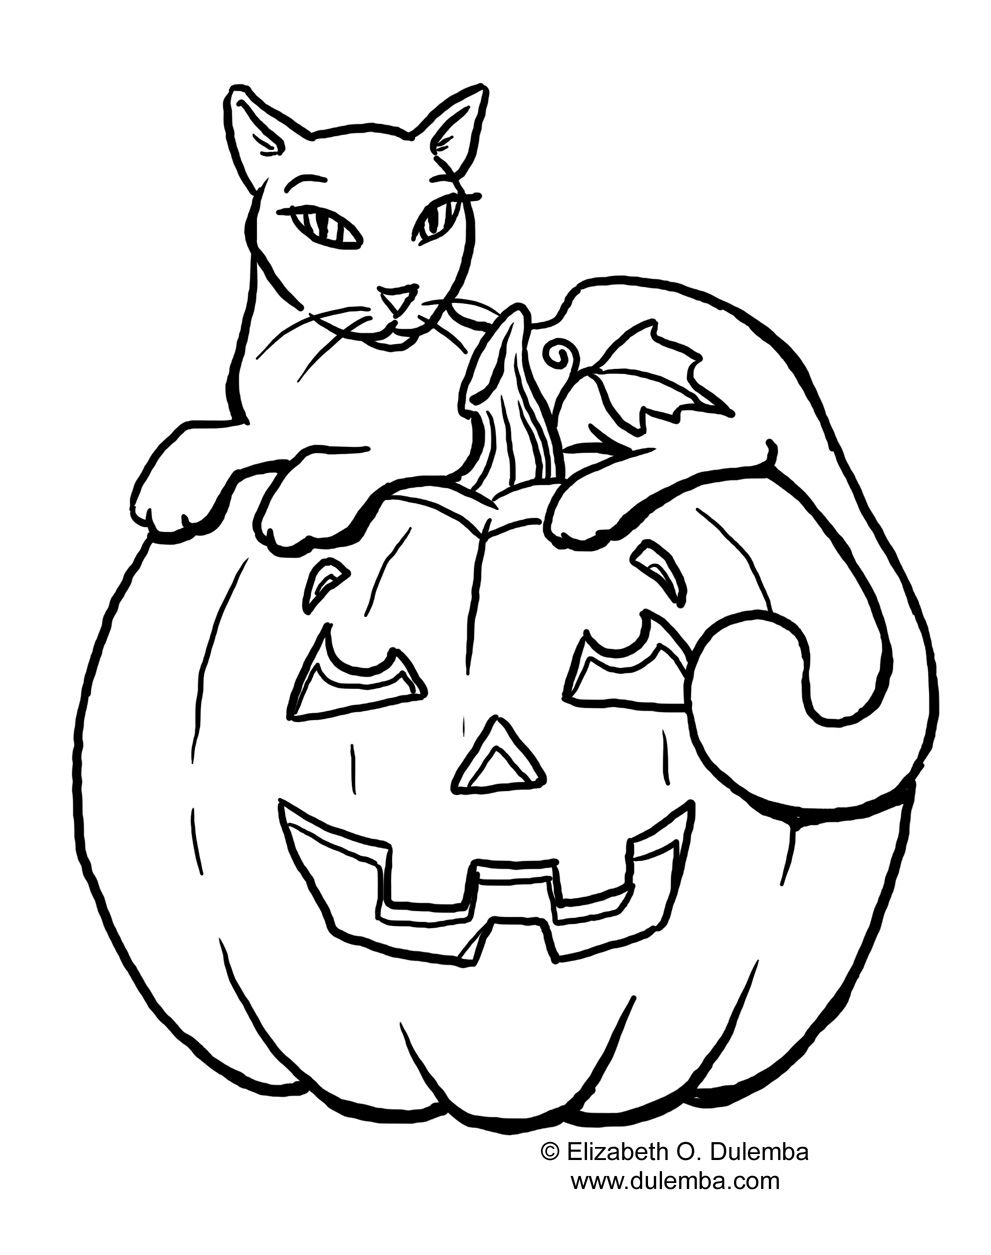 halloween black cat coloring pages black cat worksheets for kids coloring pages for kids pages black cat halloween coloring